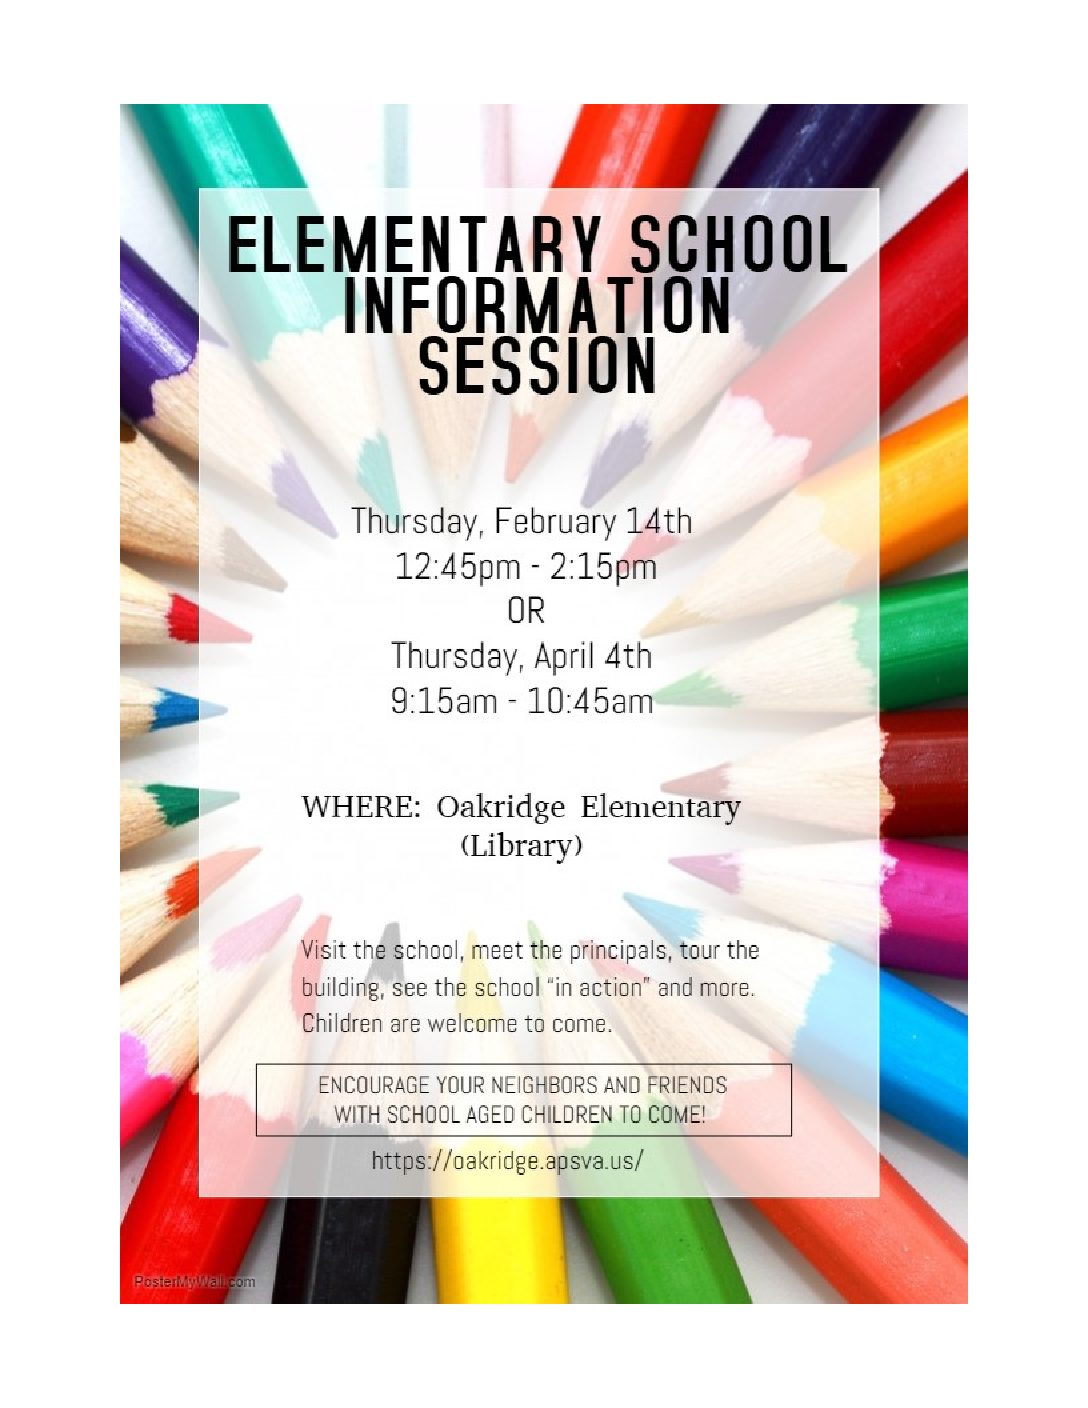 Elementary School Information Session